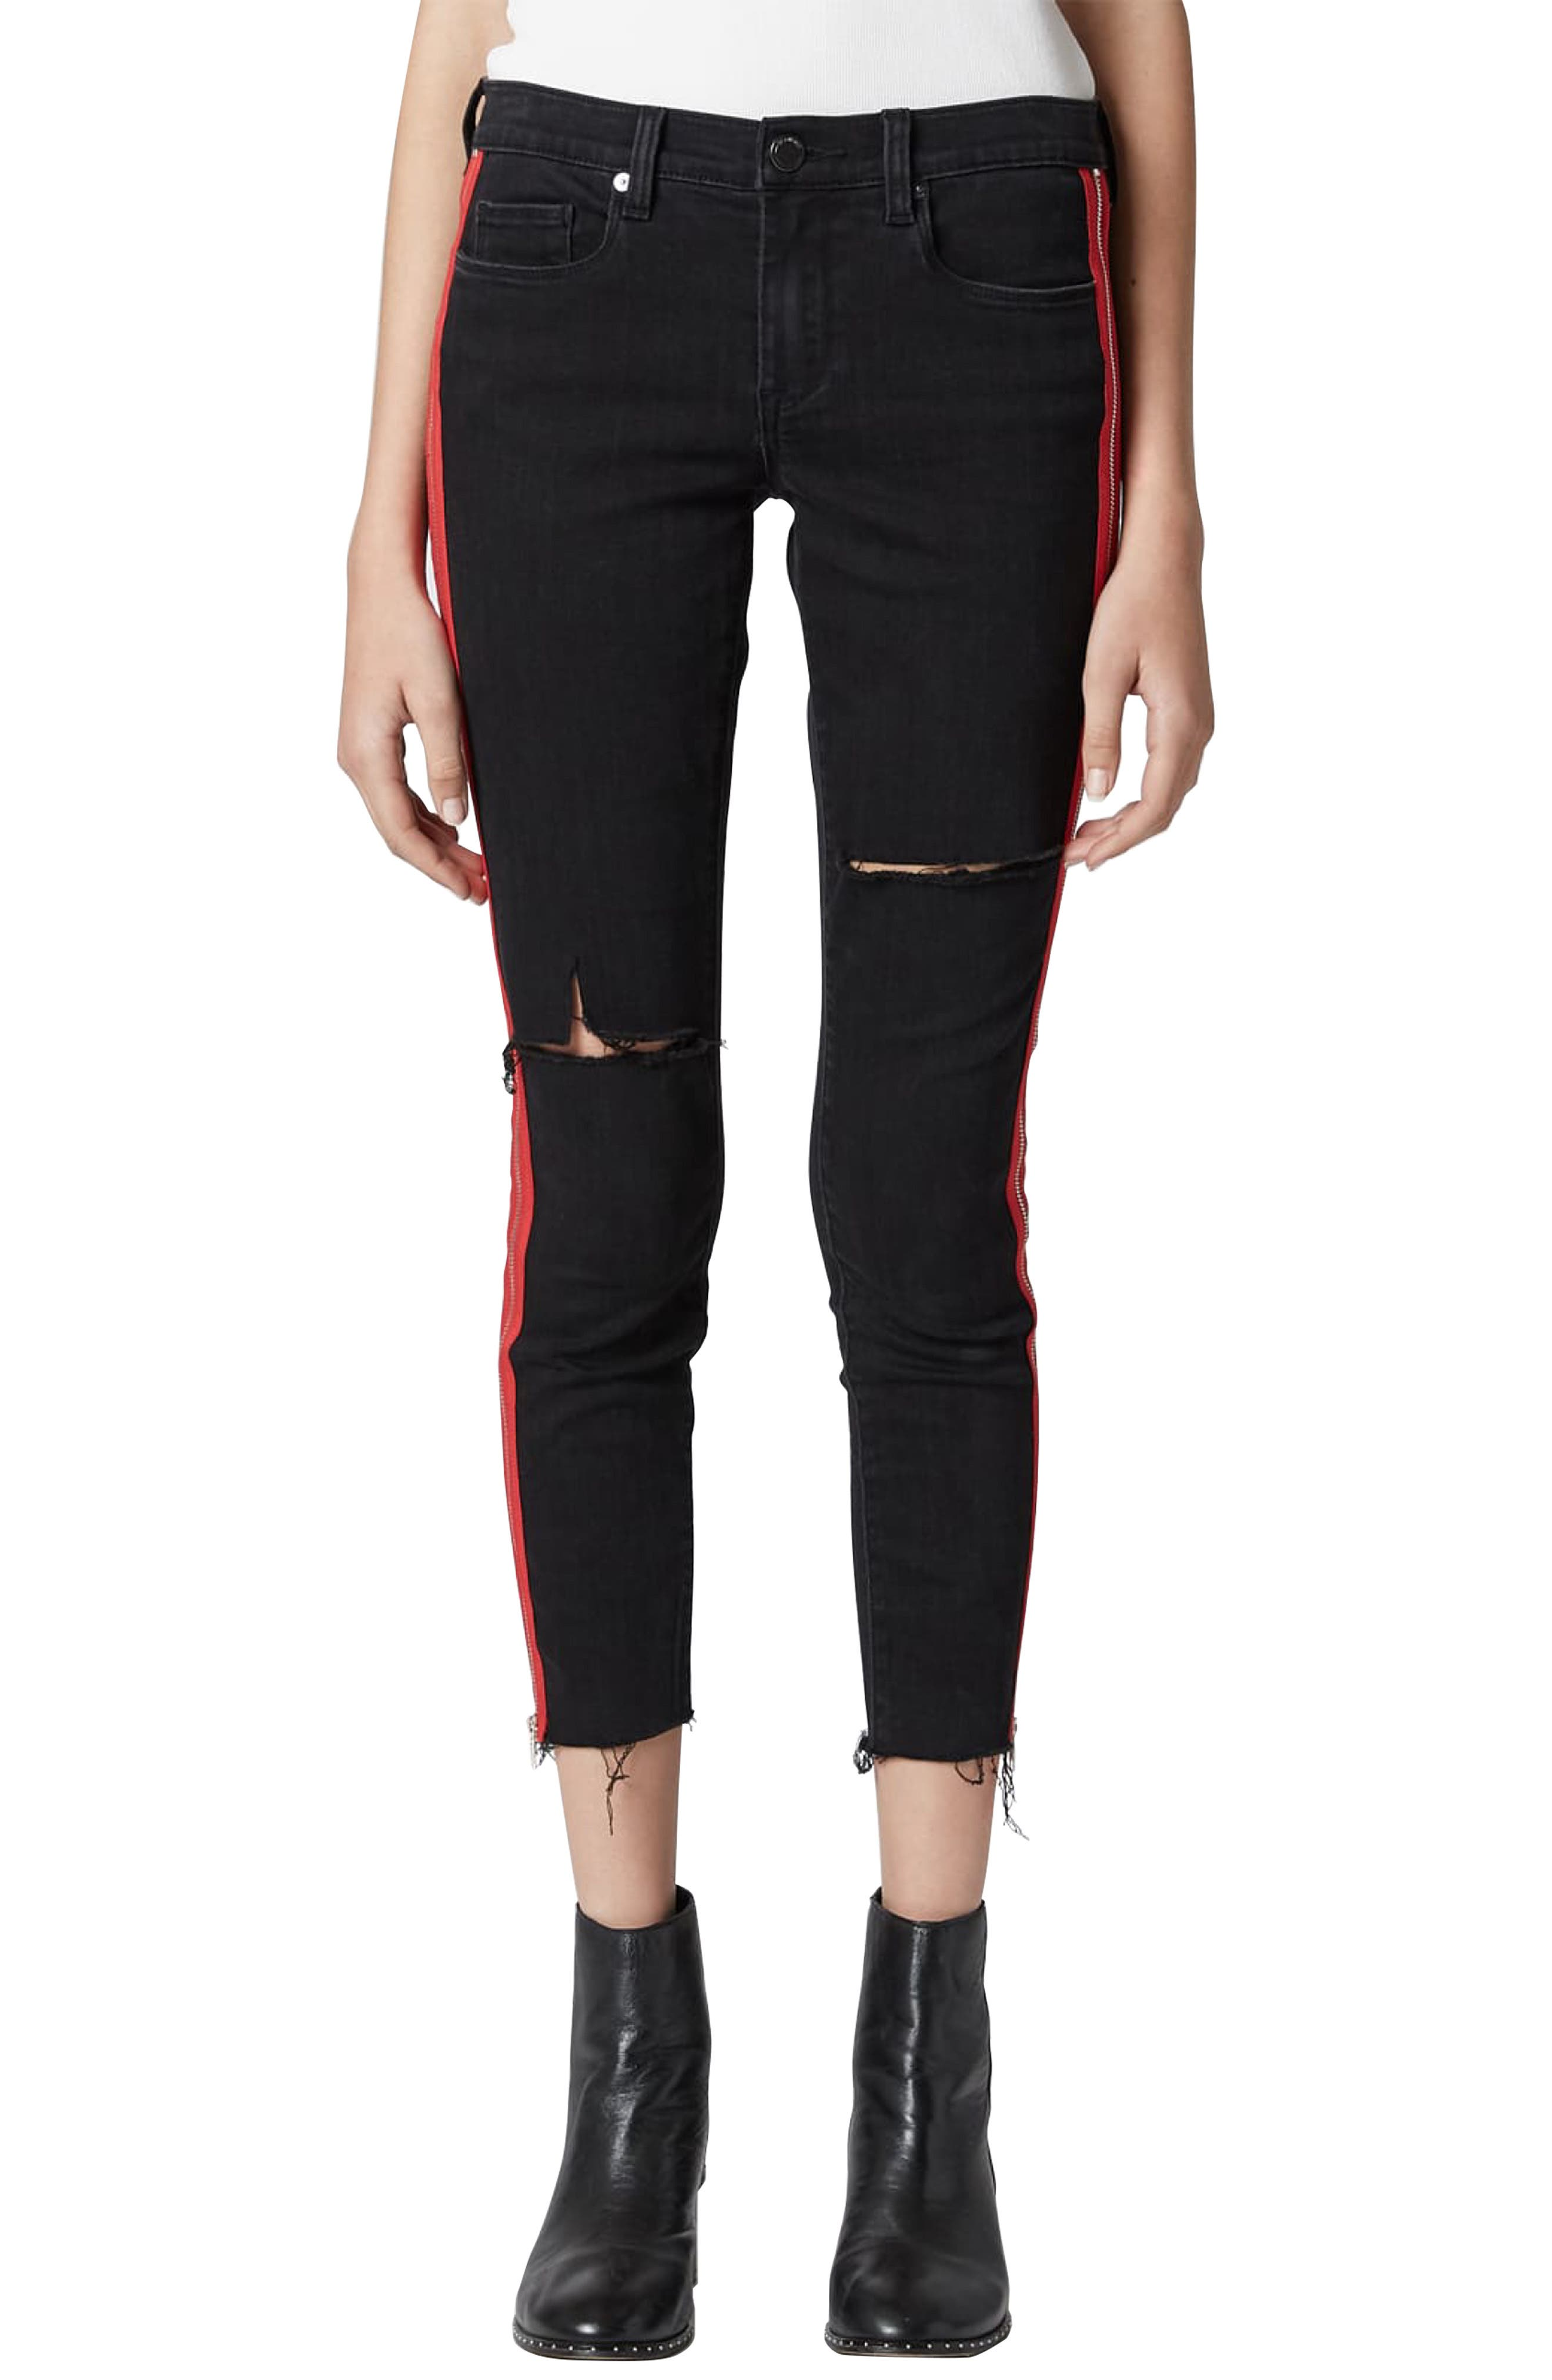 BLANKNYC, The Bond Side Zip Ripped Skinny Jeans, Main thumbnail 1, color, 001